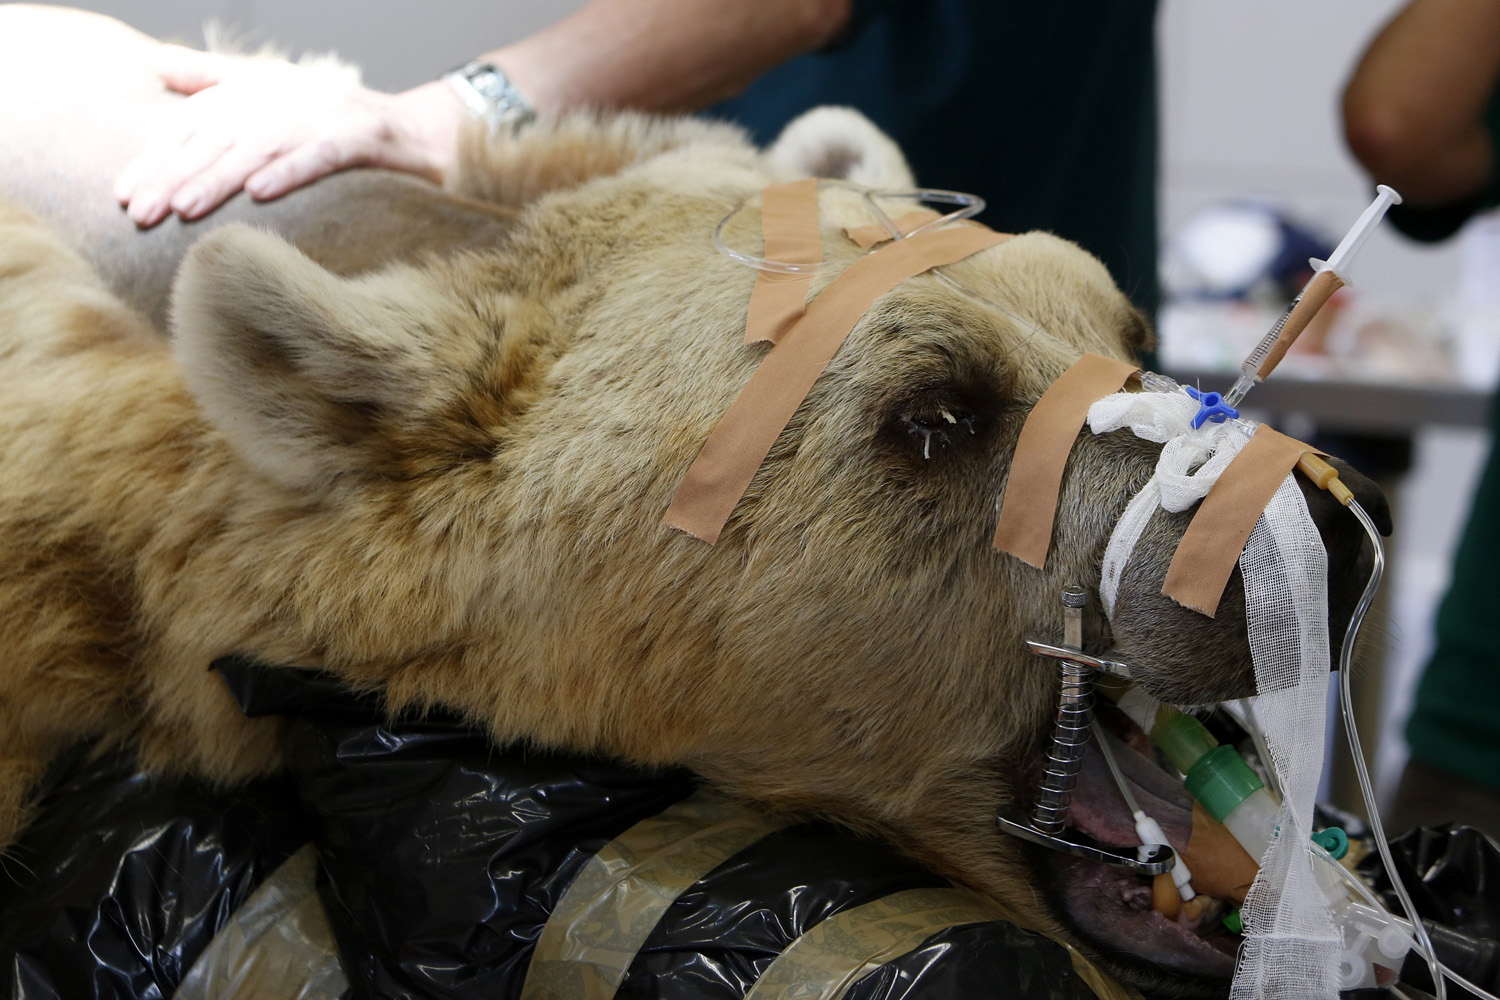 A zoo staff member touches Mango, a 19-year-old Syrian brown bear, during preparations for his surgery at the Ramat Gan Safari near Tel Aviv on May 7, 2014.